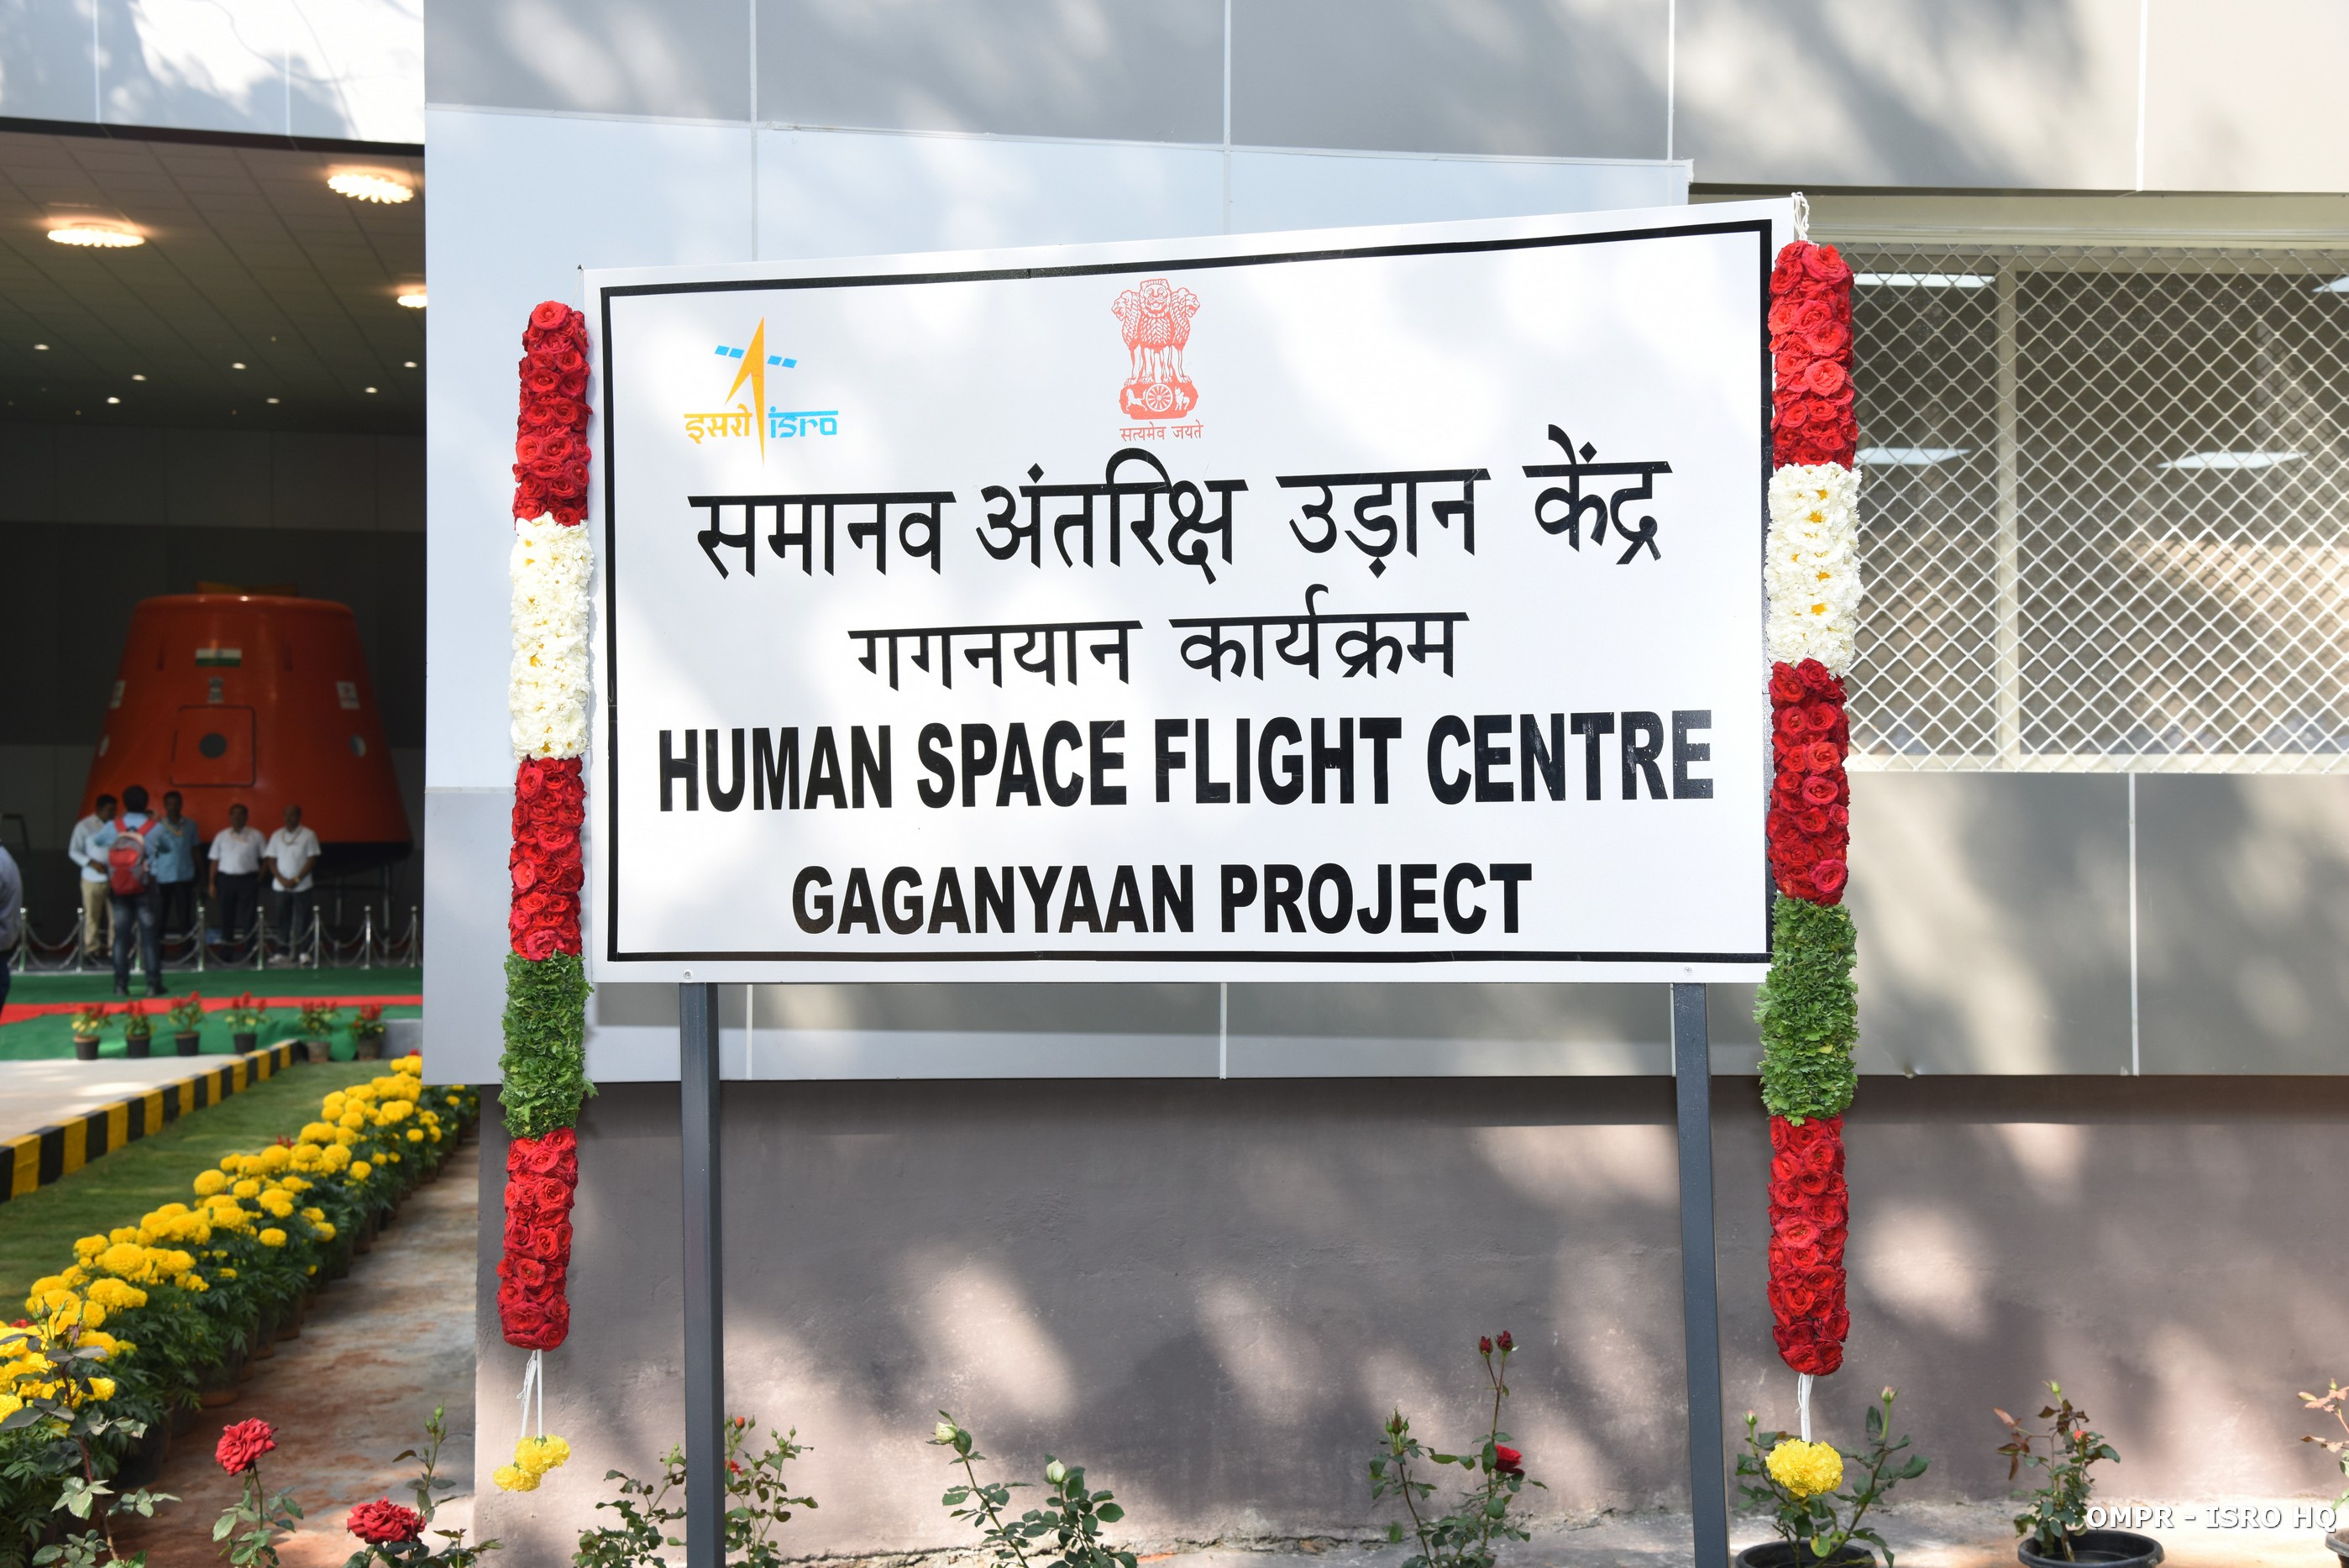 Inauguration of Human Space Flight Centre (HSFC)